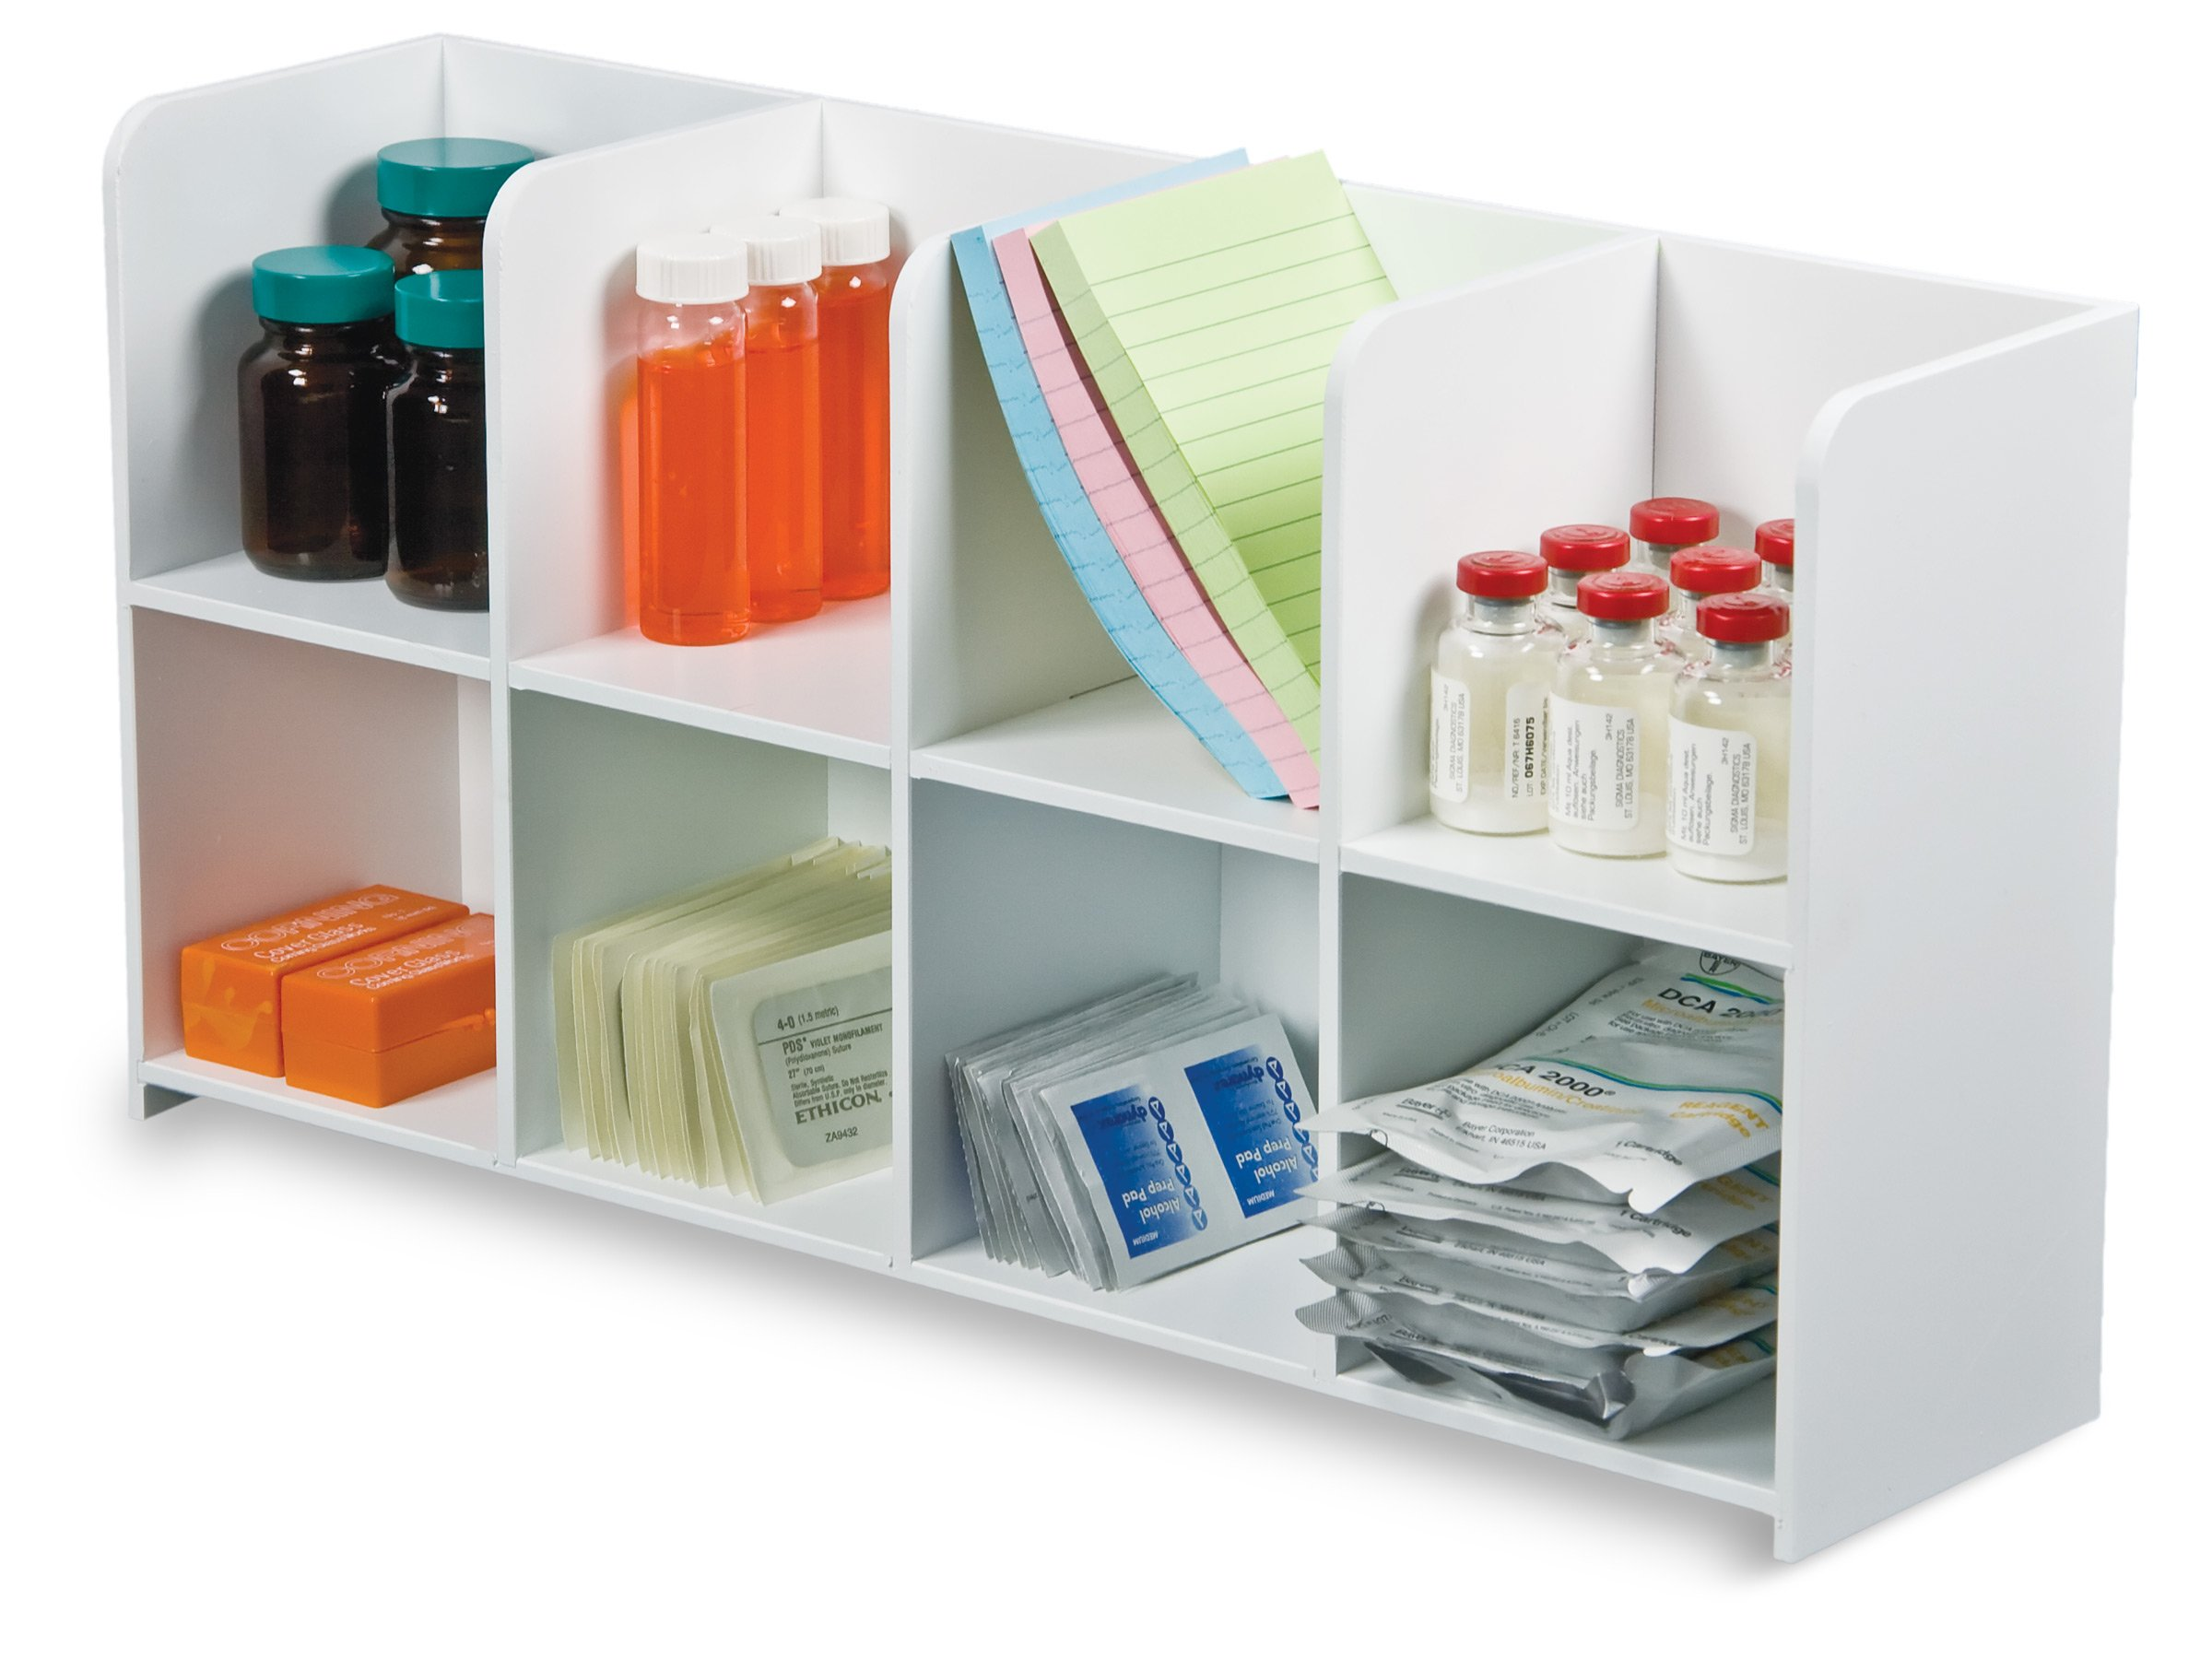 TrippNT 50669 White PVC/Acrylic Plastic Standing Storage Bin with 8 Compartments, 20.25'' Width x 10'' Height x 5'' Depth